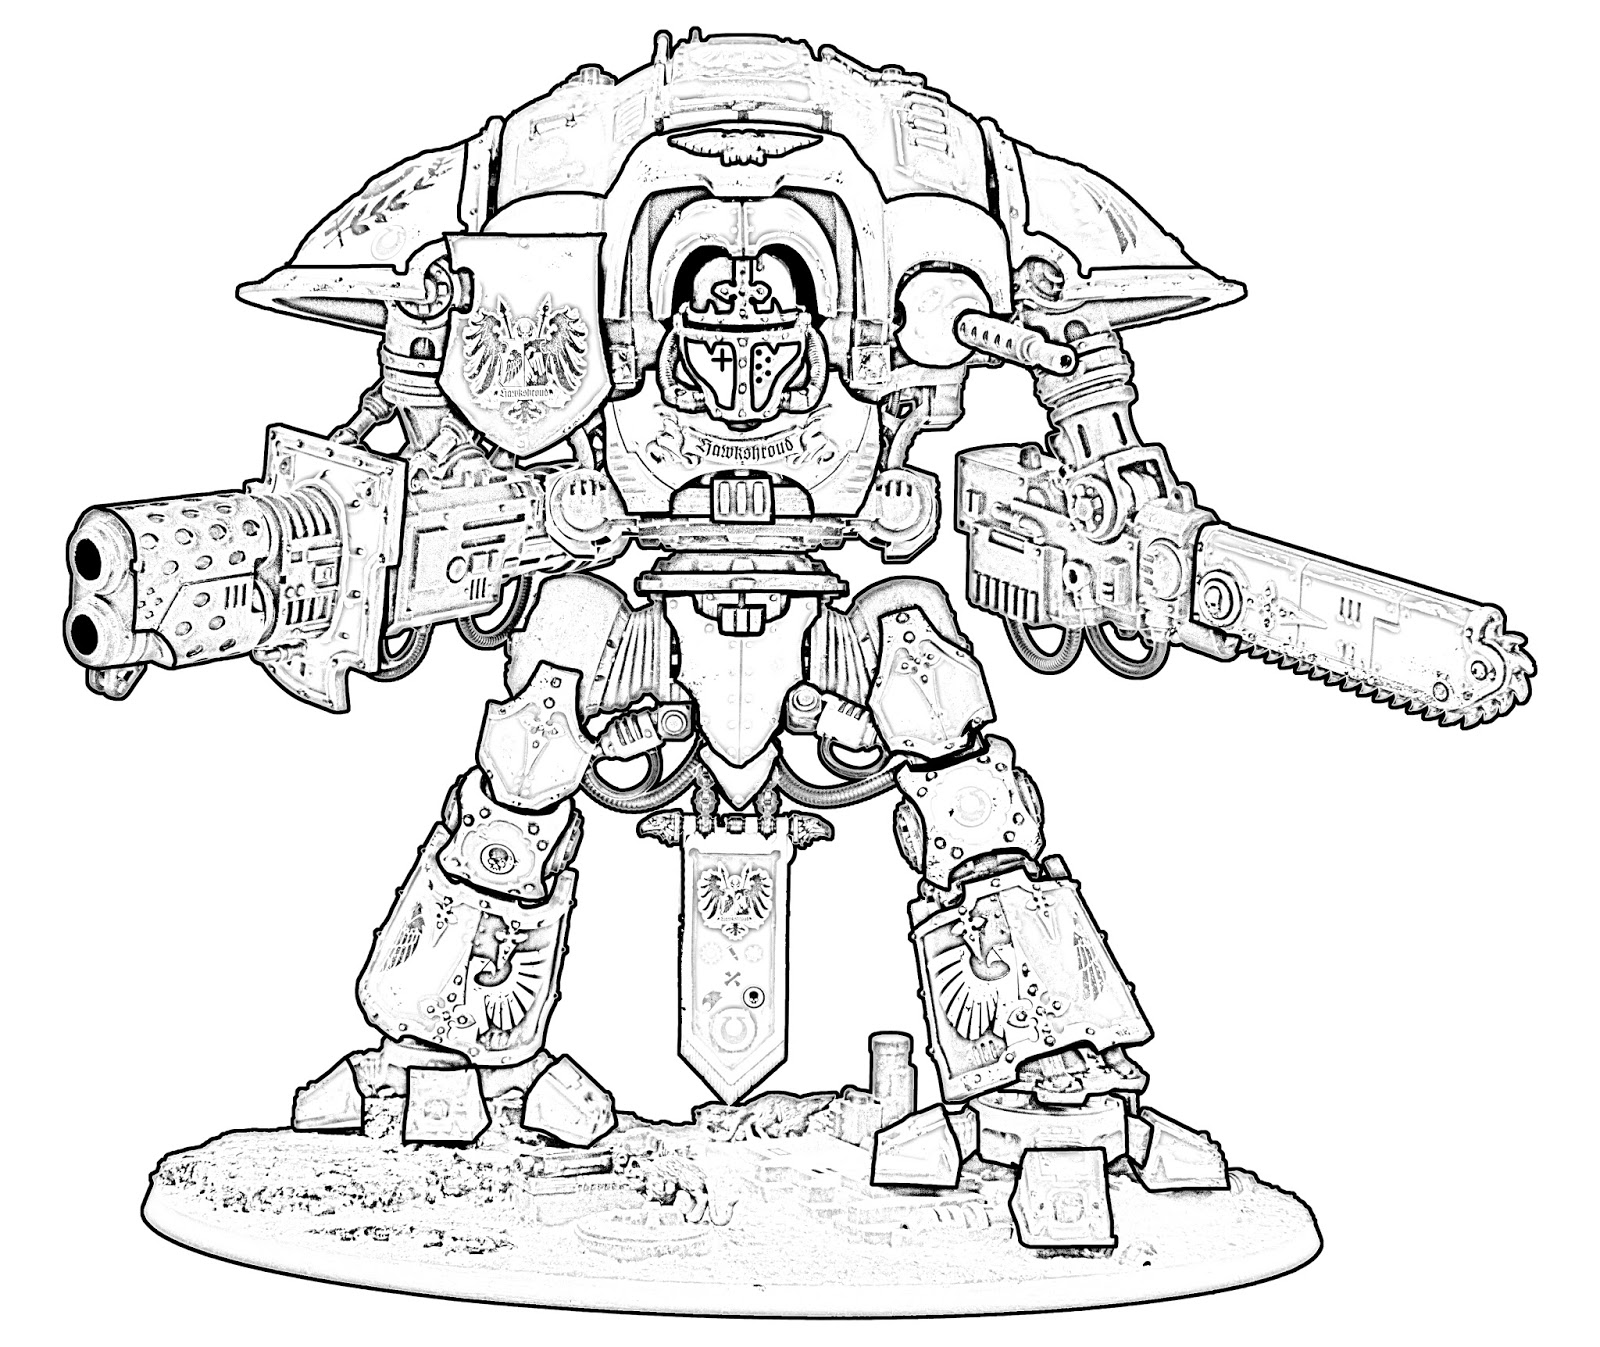 Rumour: Citadel Colouring Book Leaked Cover